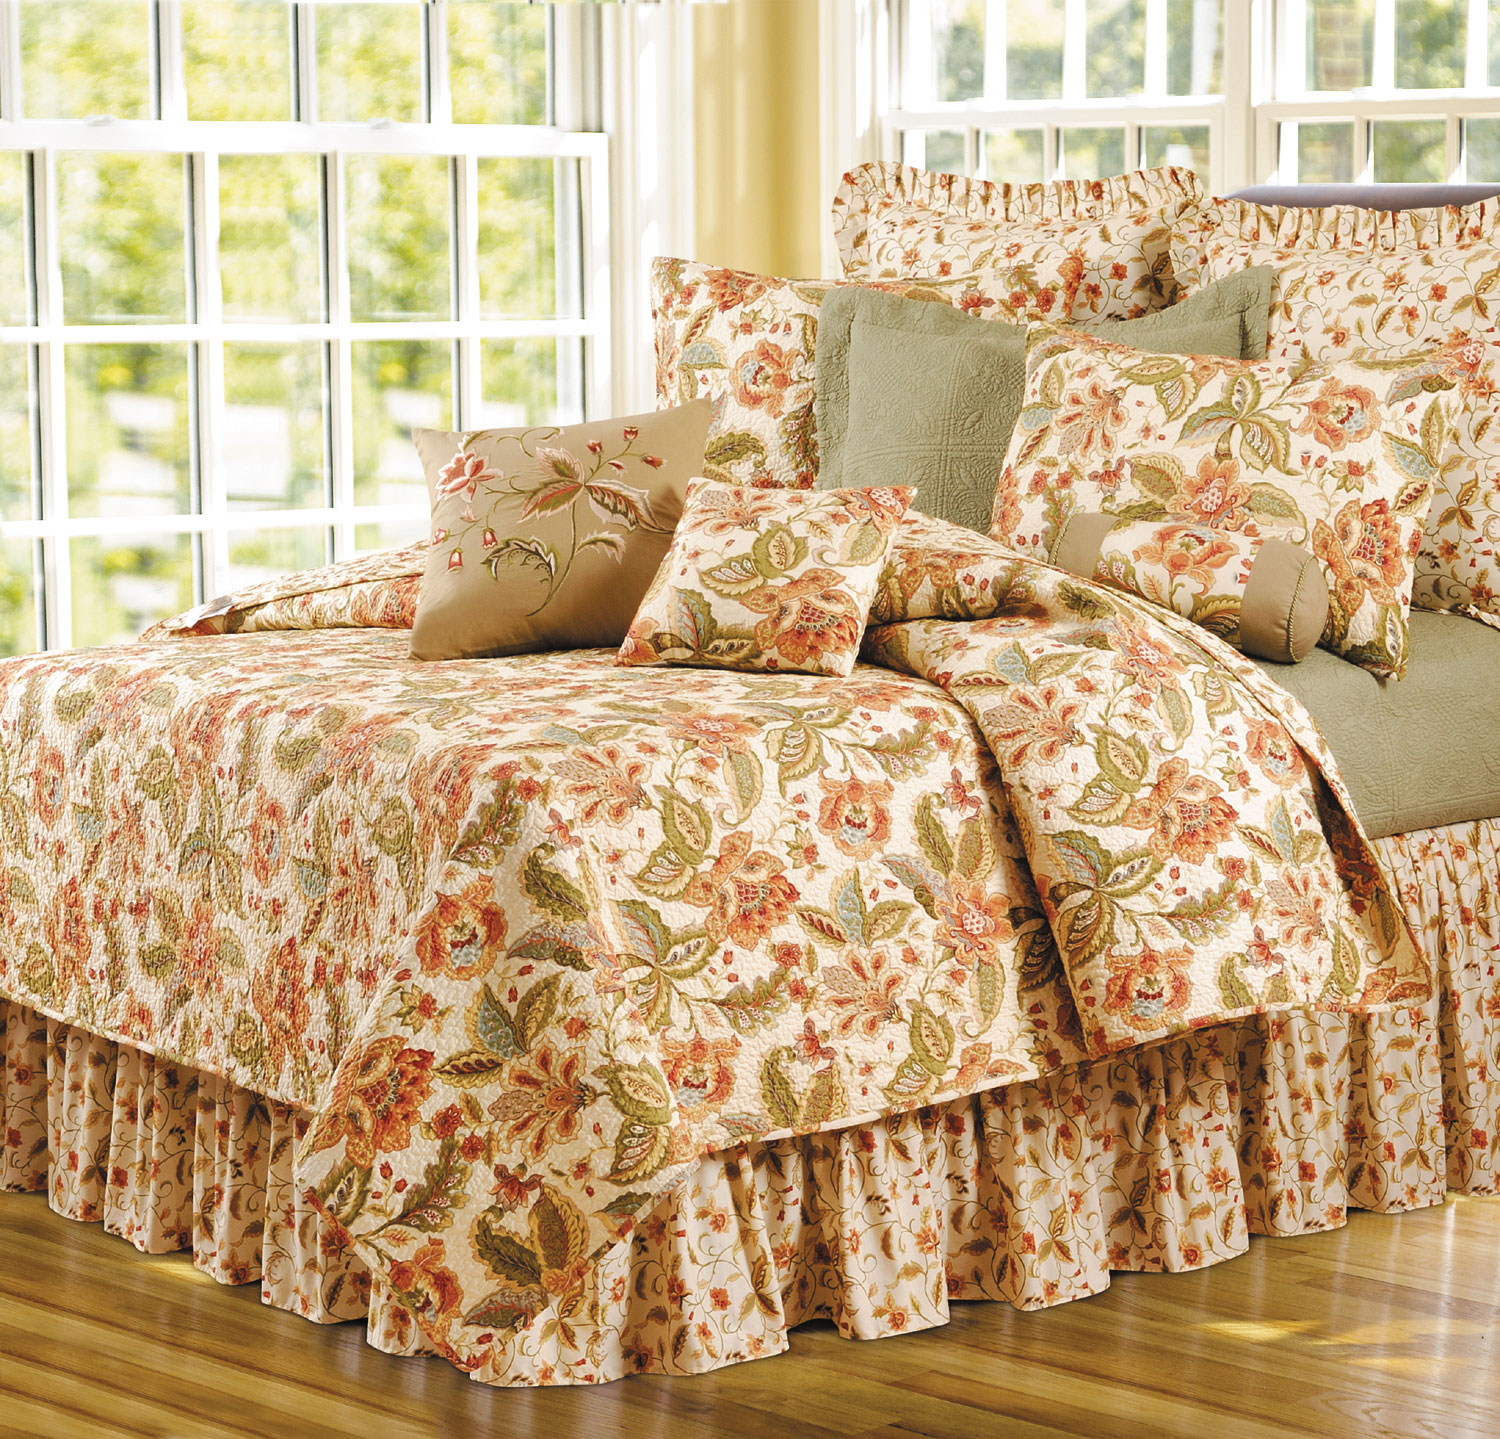 Amelia by CF Quilts  BeddingSuperStorecom